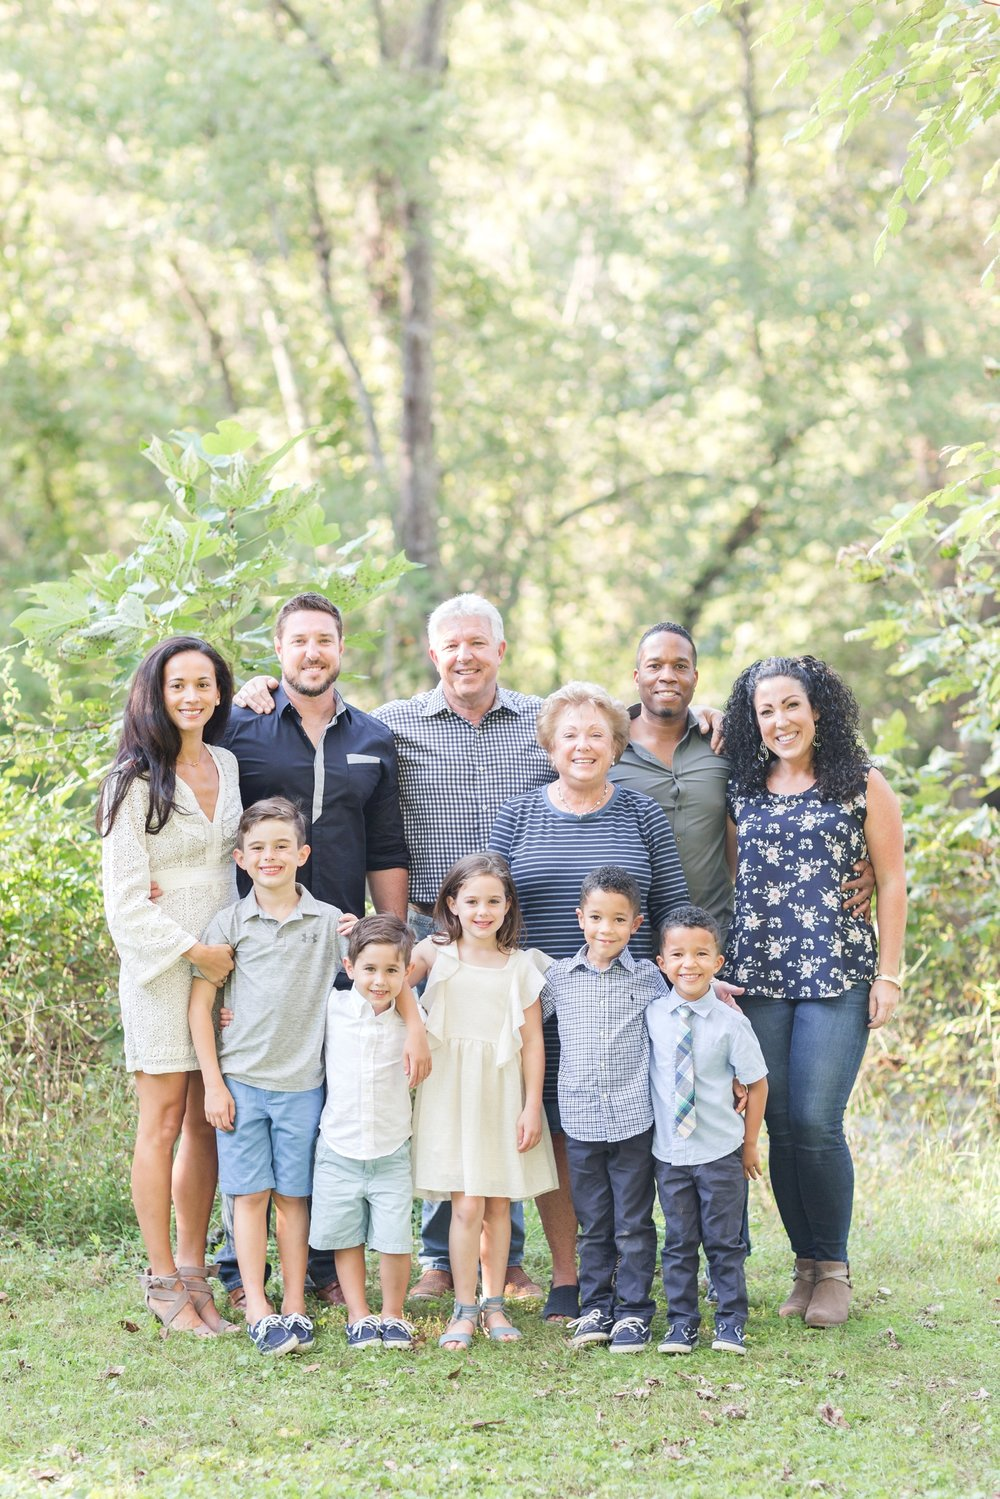 Smith-Padgett Family 2018-147_Jerusalem-Mill-Maryland-Family-Photographer-anna-grace-photography-photo.jpg